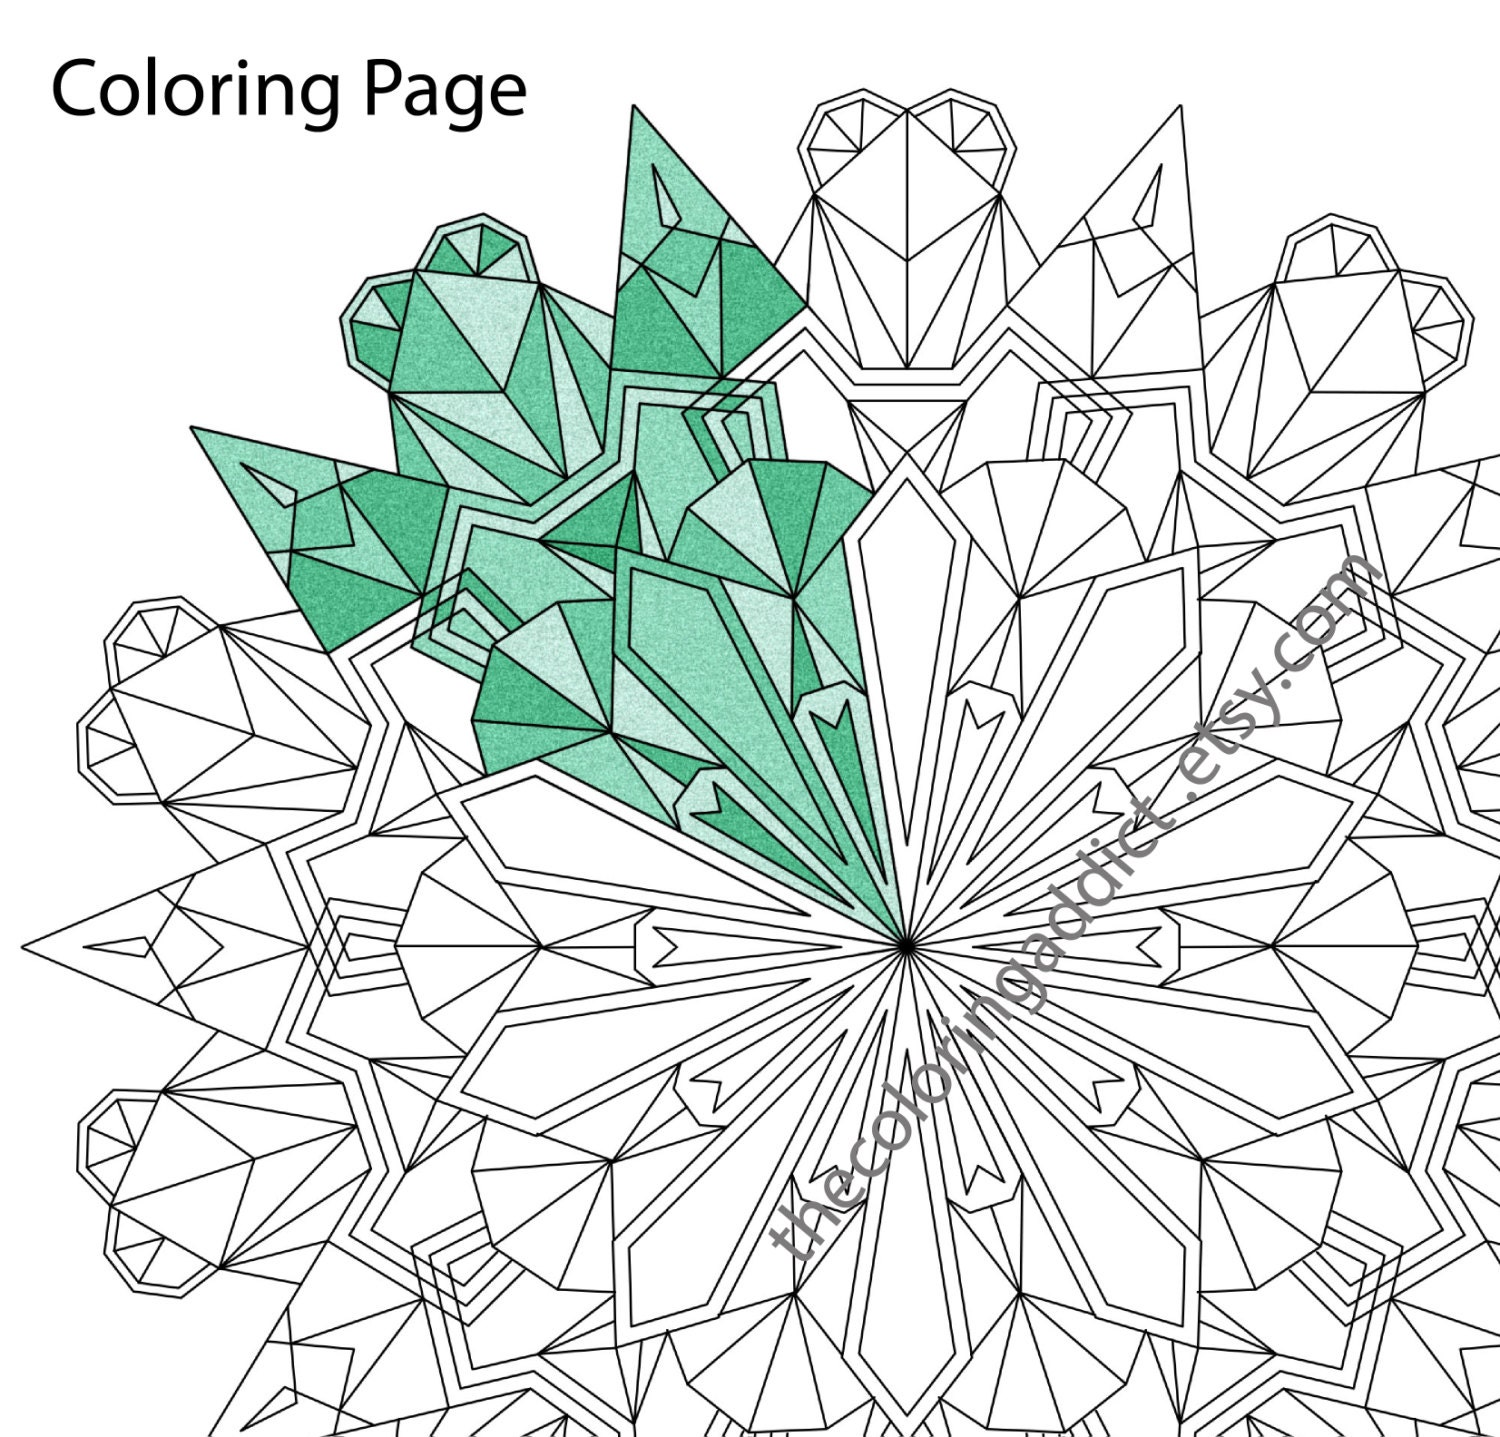 The coloring book e book - This Is A Digital File